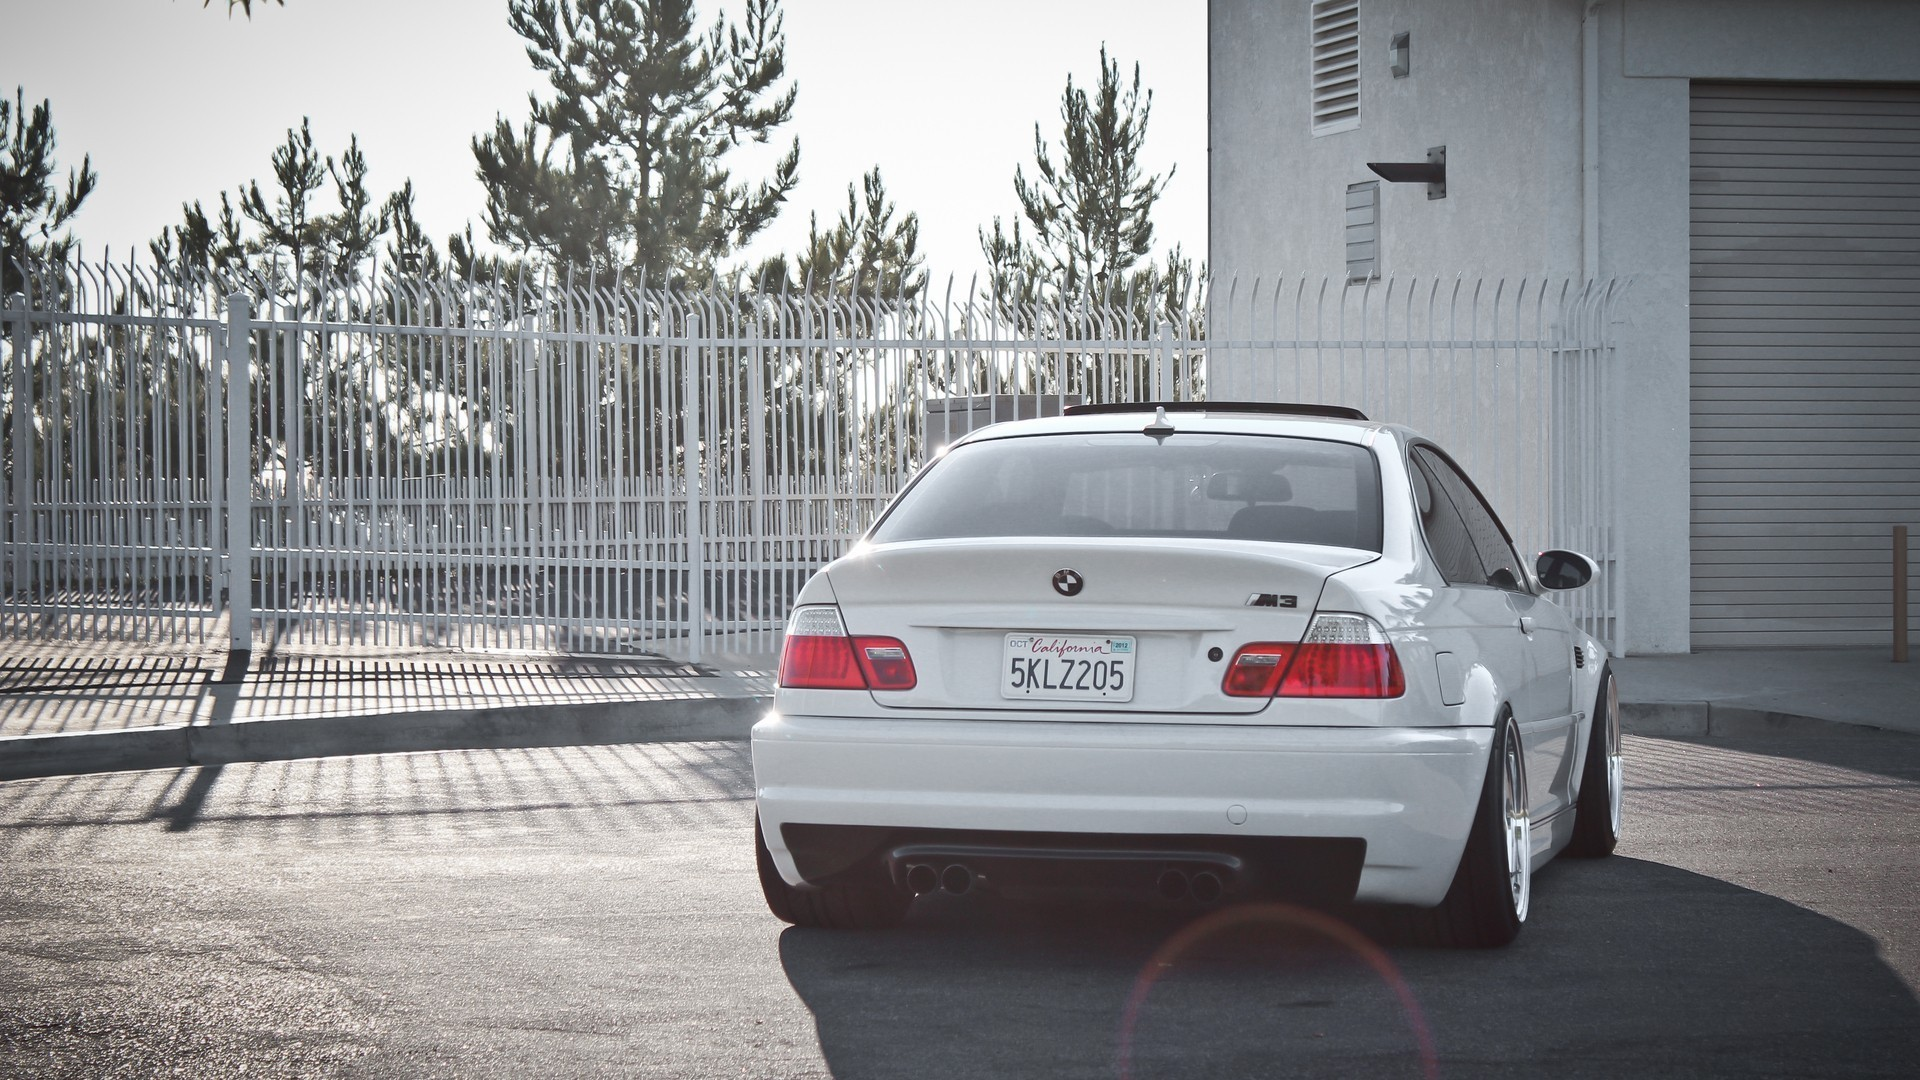 1920x1080 Bmw e46 m3 Autos Luxus Sport wallpaper